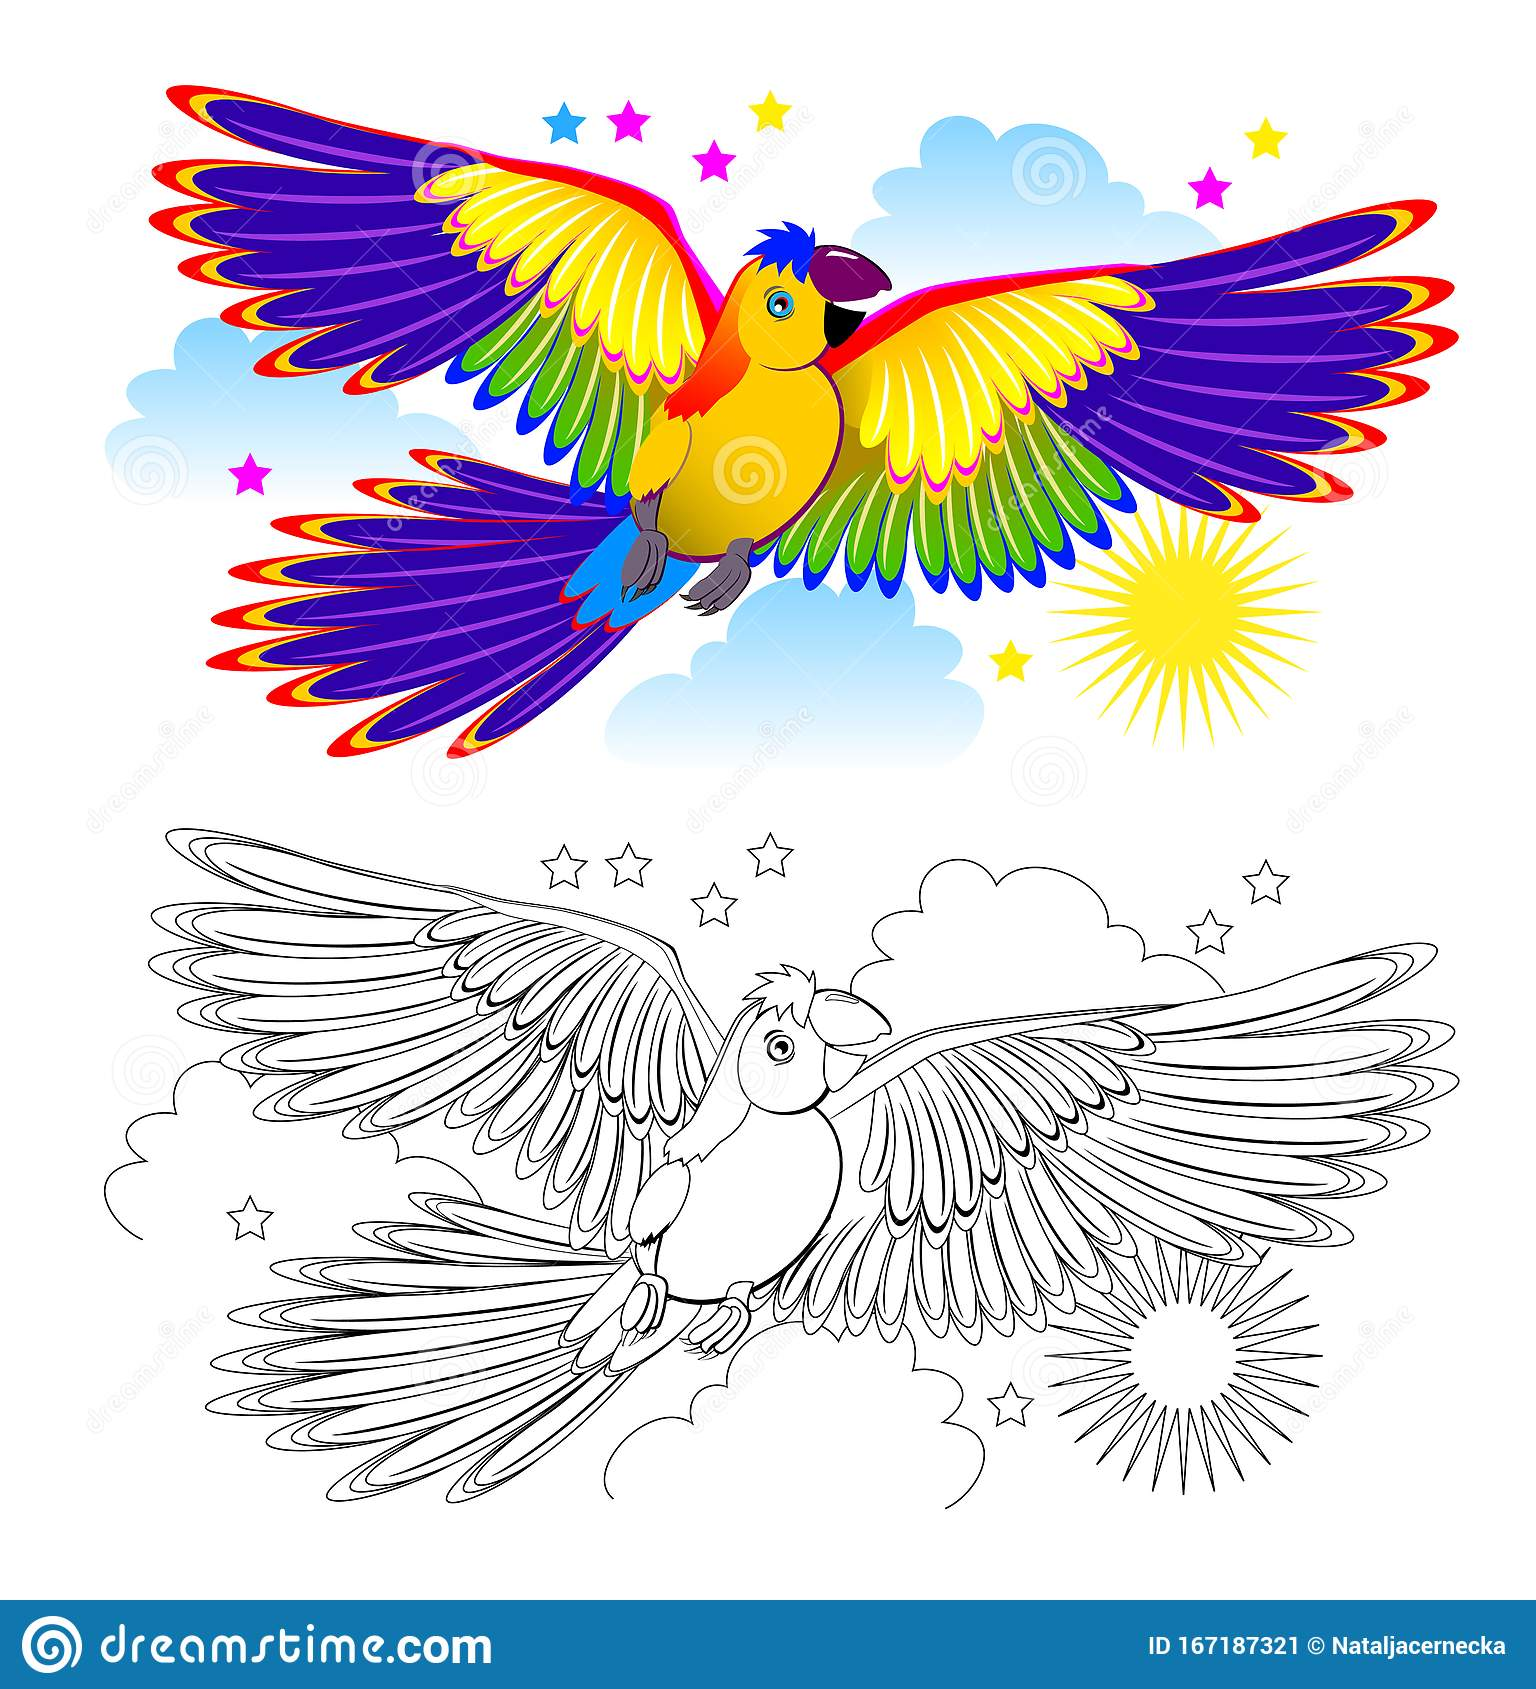 Colorful And Black And White Page For Coloring Book For Kids Fantasy Drawing Of Cute Parrot Flying On The Sky Stock Vector Illustration Of Adult Activity 167187321